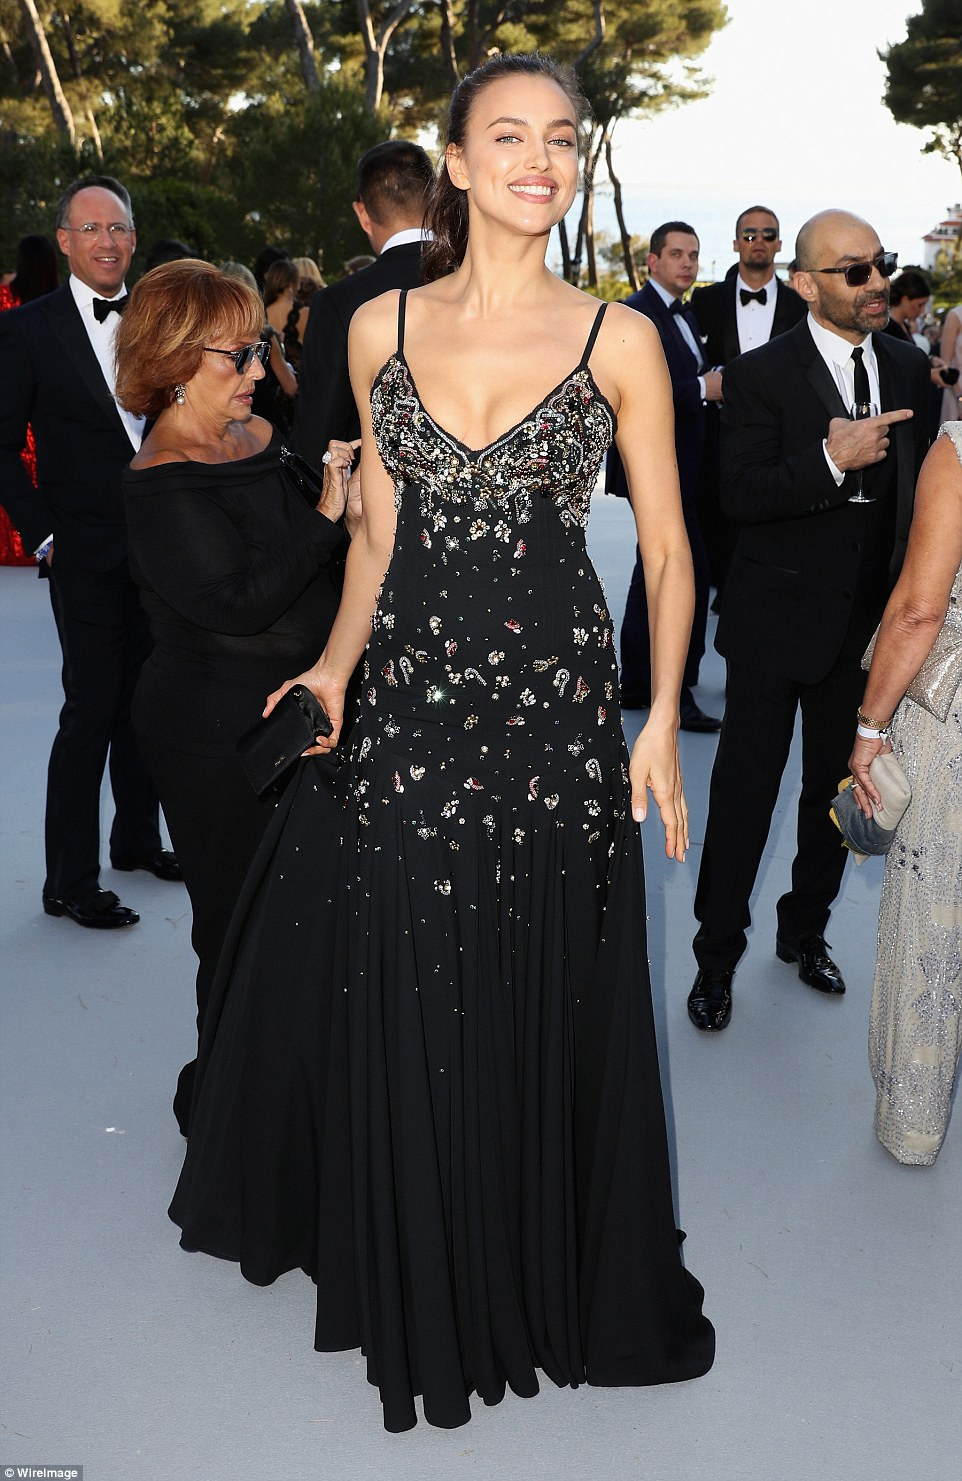 Dazzling: Irina was grinning from ear to ear as she enjoyed the festivities